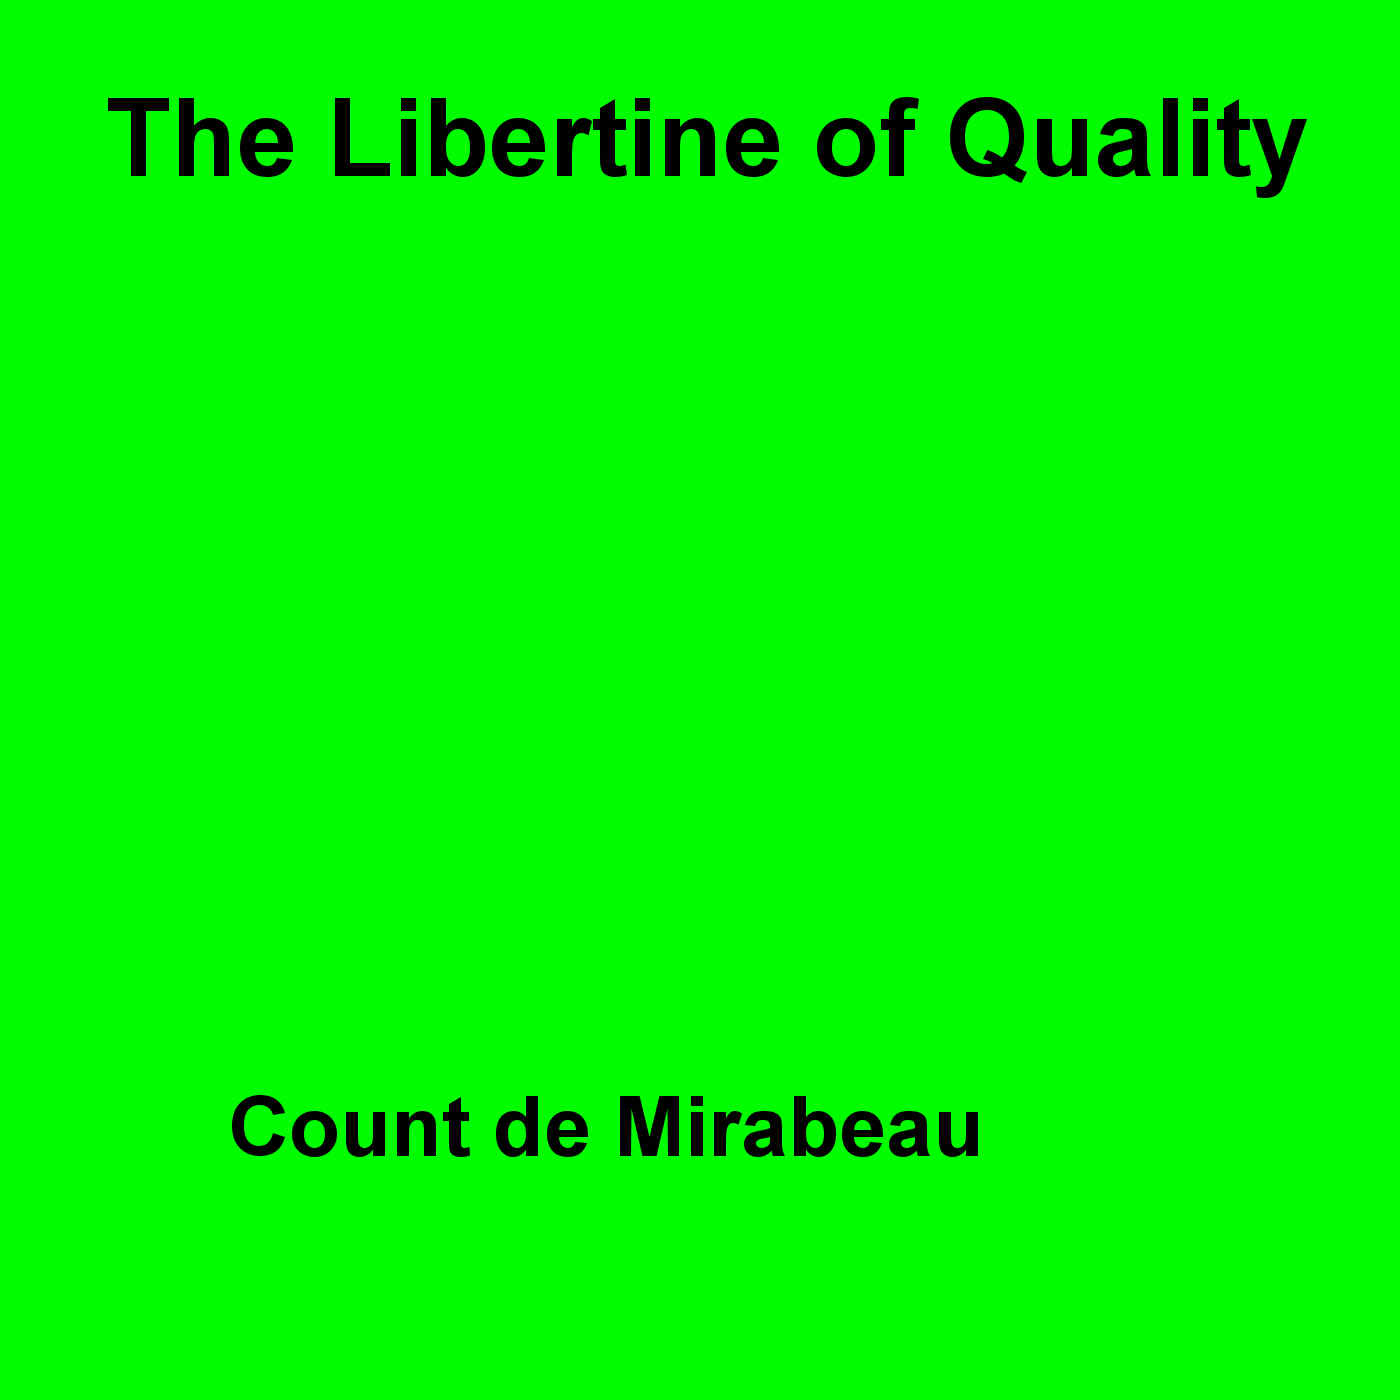 The Libertine Of Quality